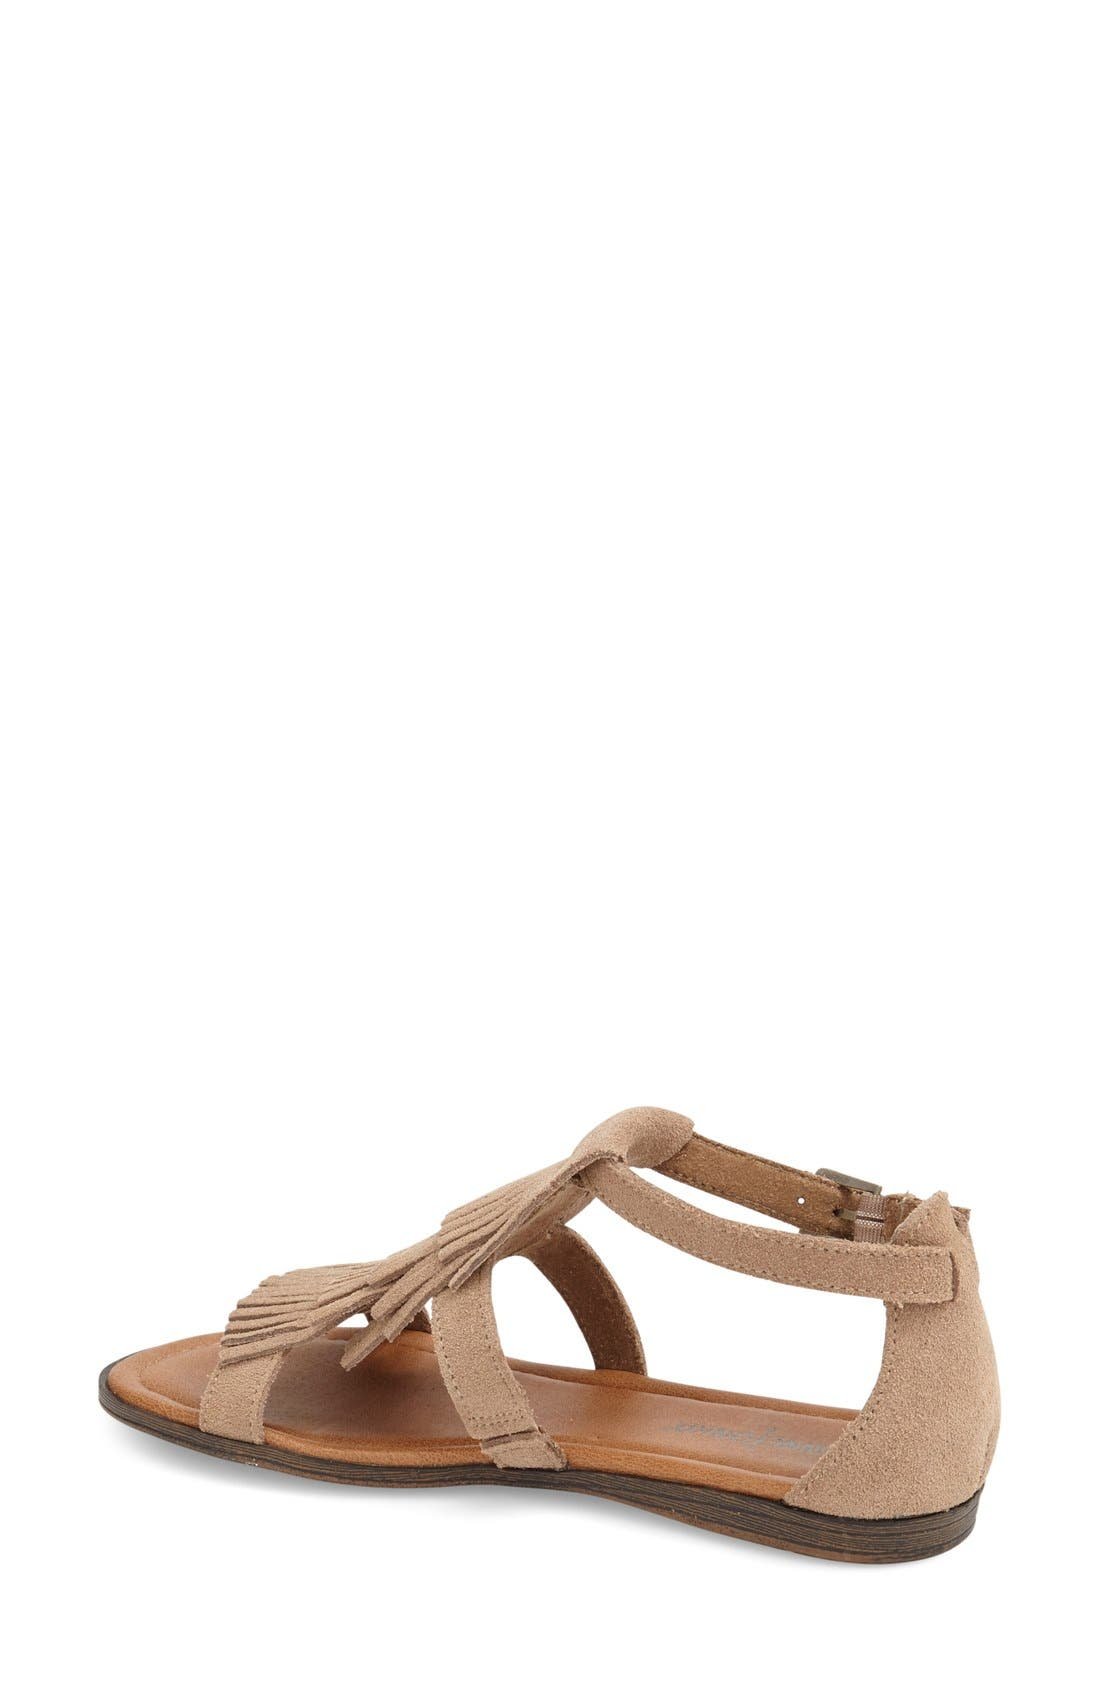 Alternate Image 2  - Minnetonka 'Maui' Sandal